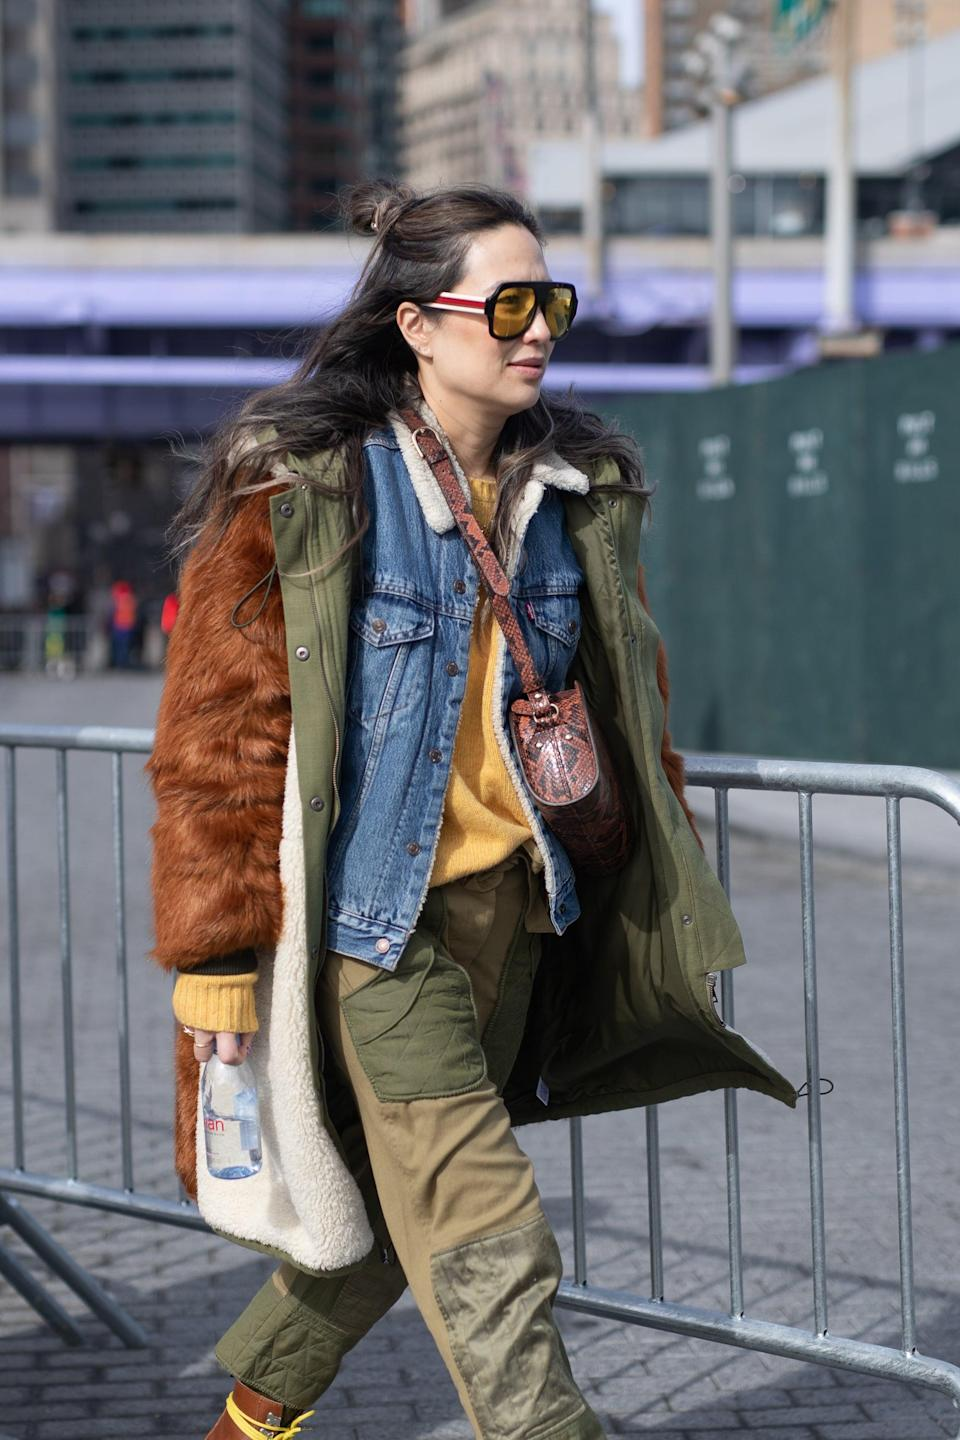 <p>Lean into the layered look and utilitarian vibes with an army jacket and denim to top off a pair of cargo fatigues. </p>